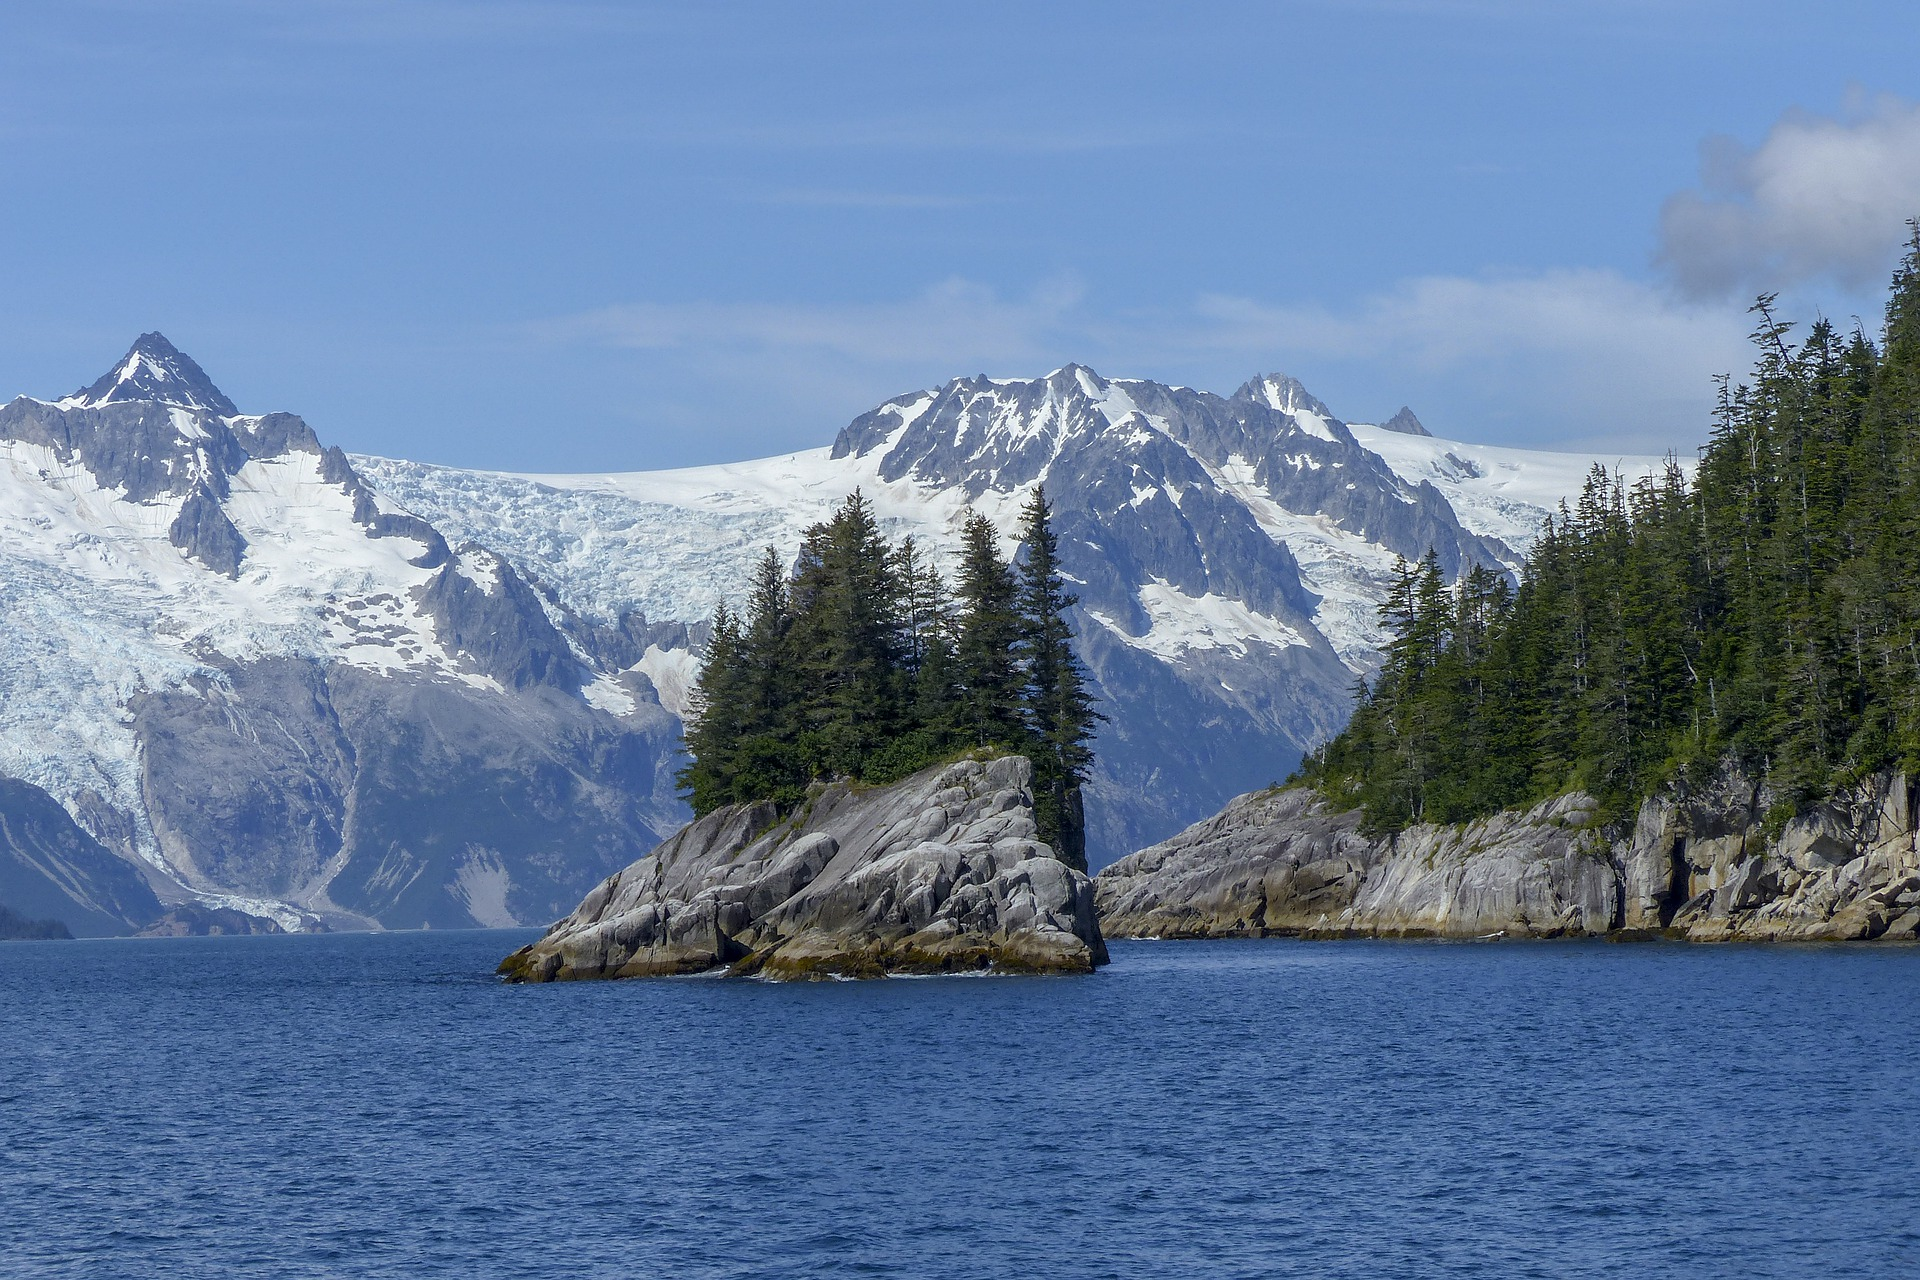 Small island with trees as glaciers loom in background.